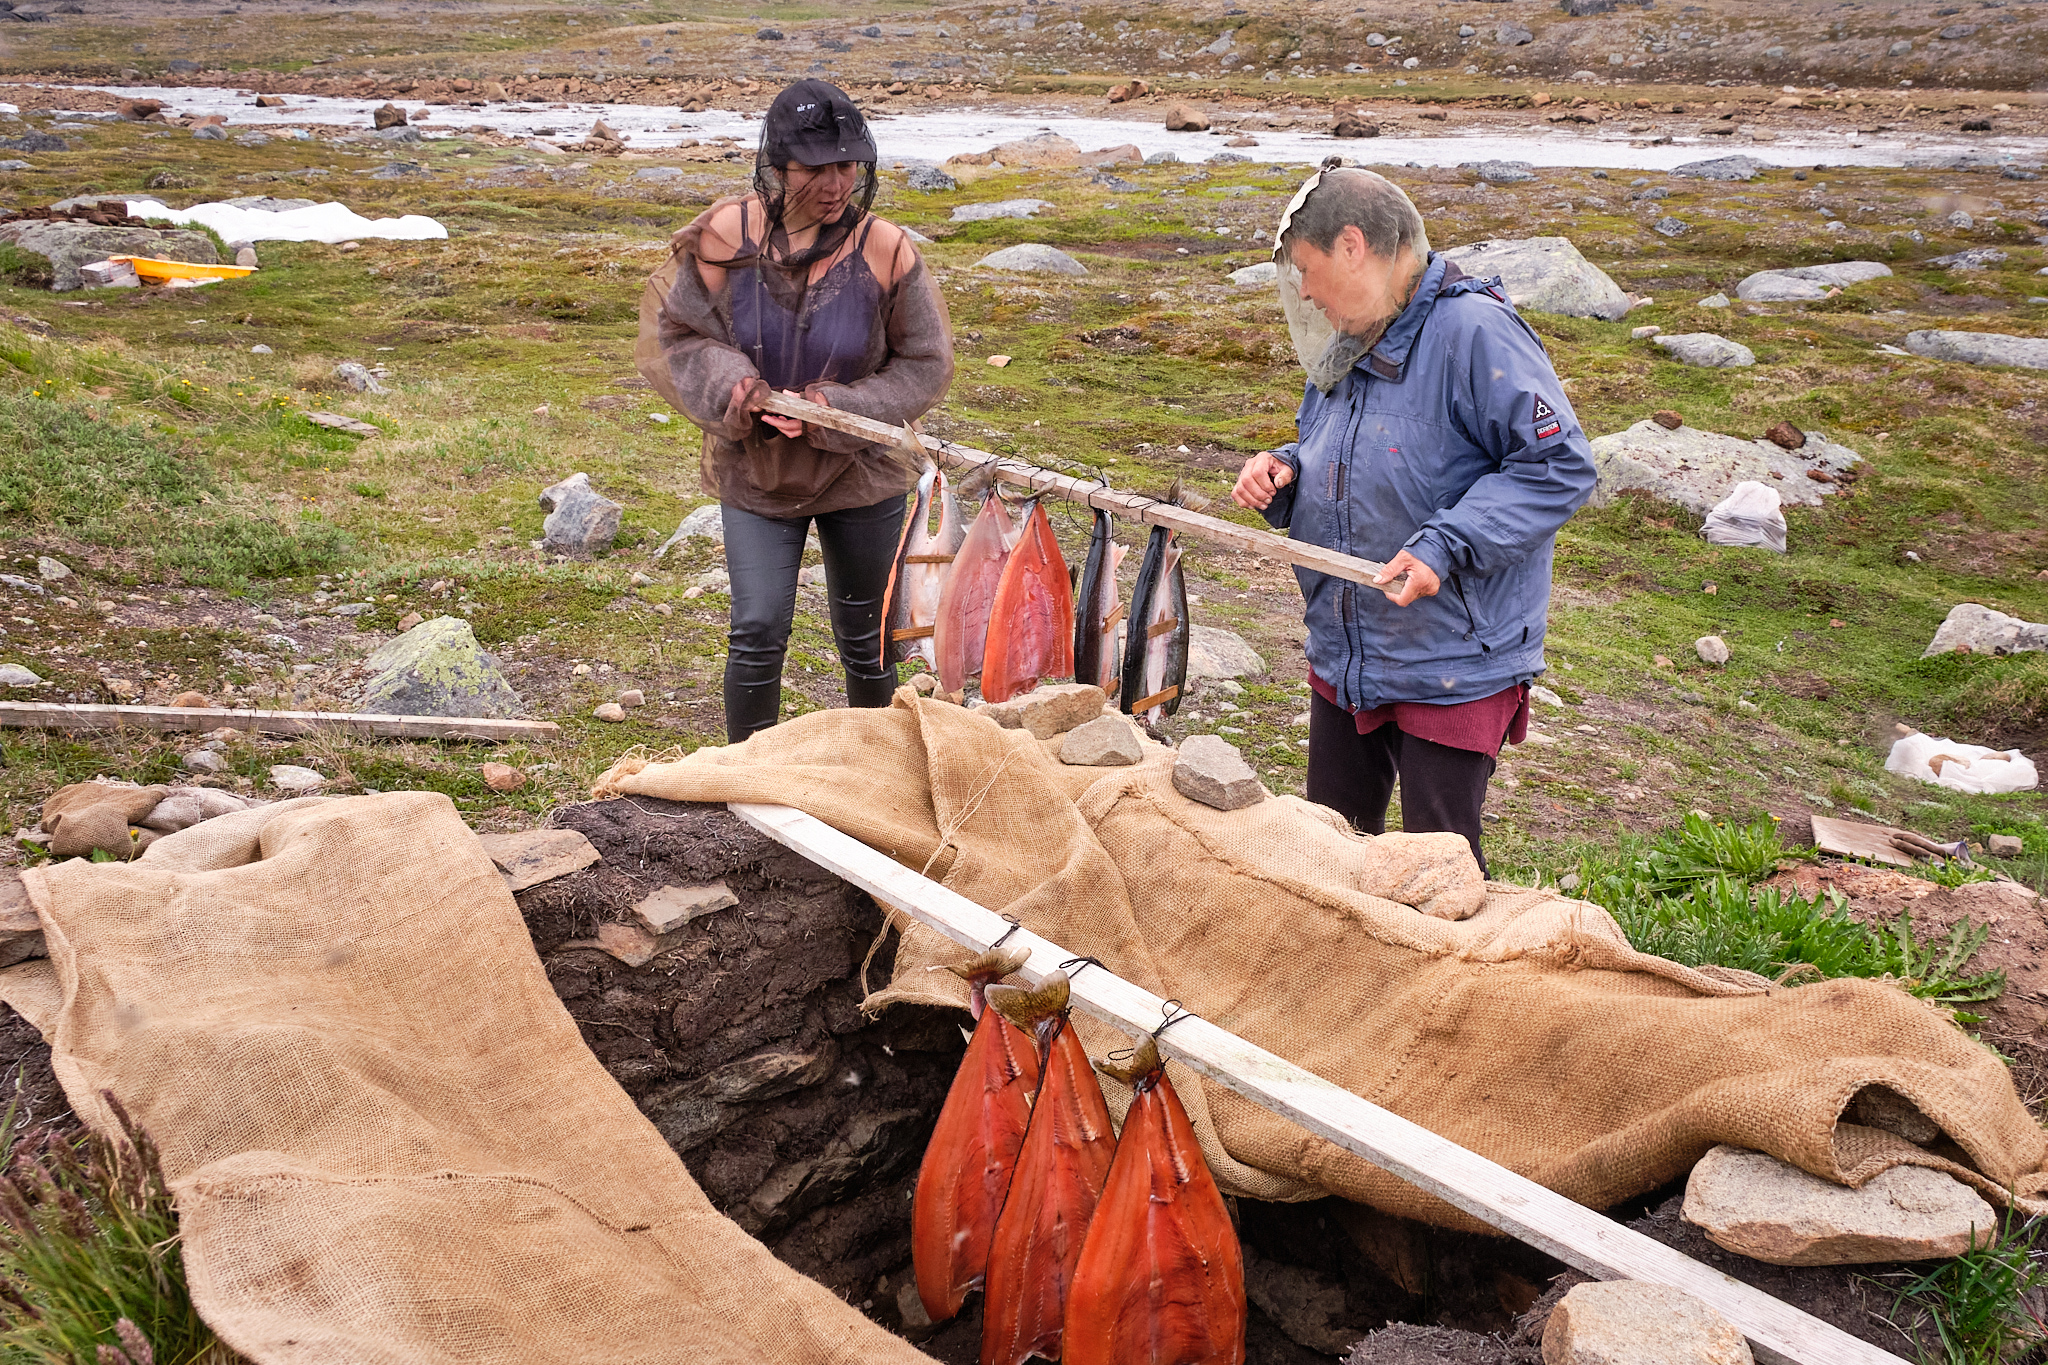 transporting the fish to the smoking pit - Sassannguit - Greenland